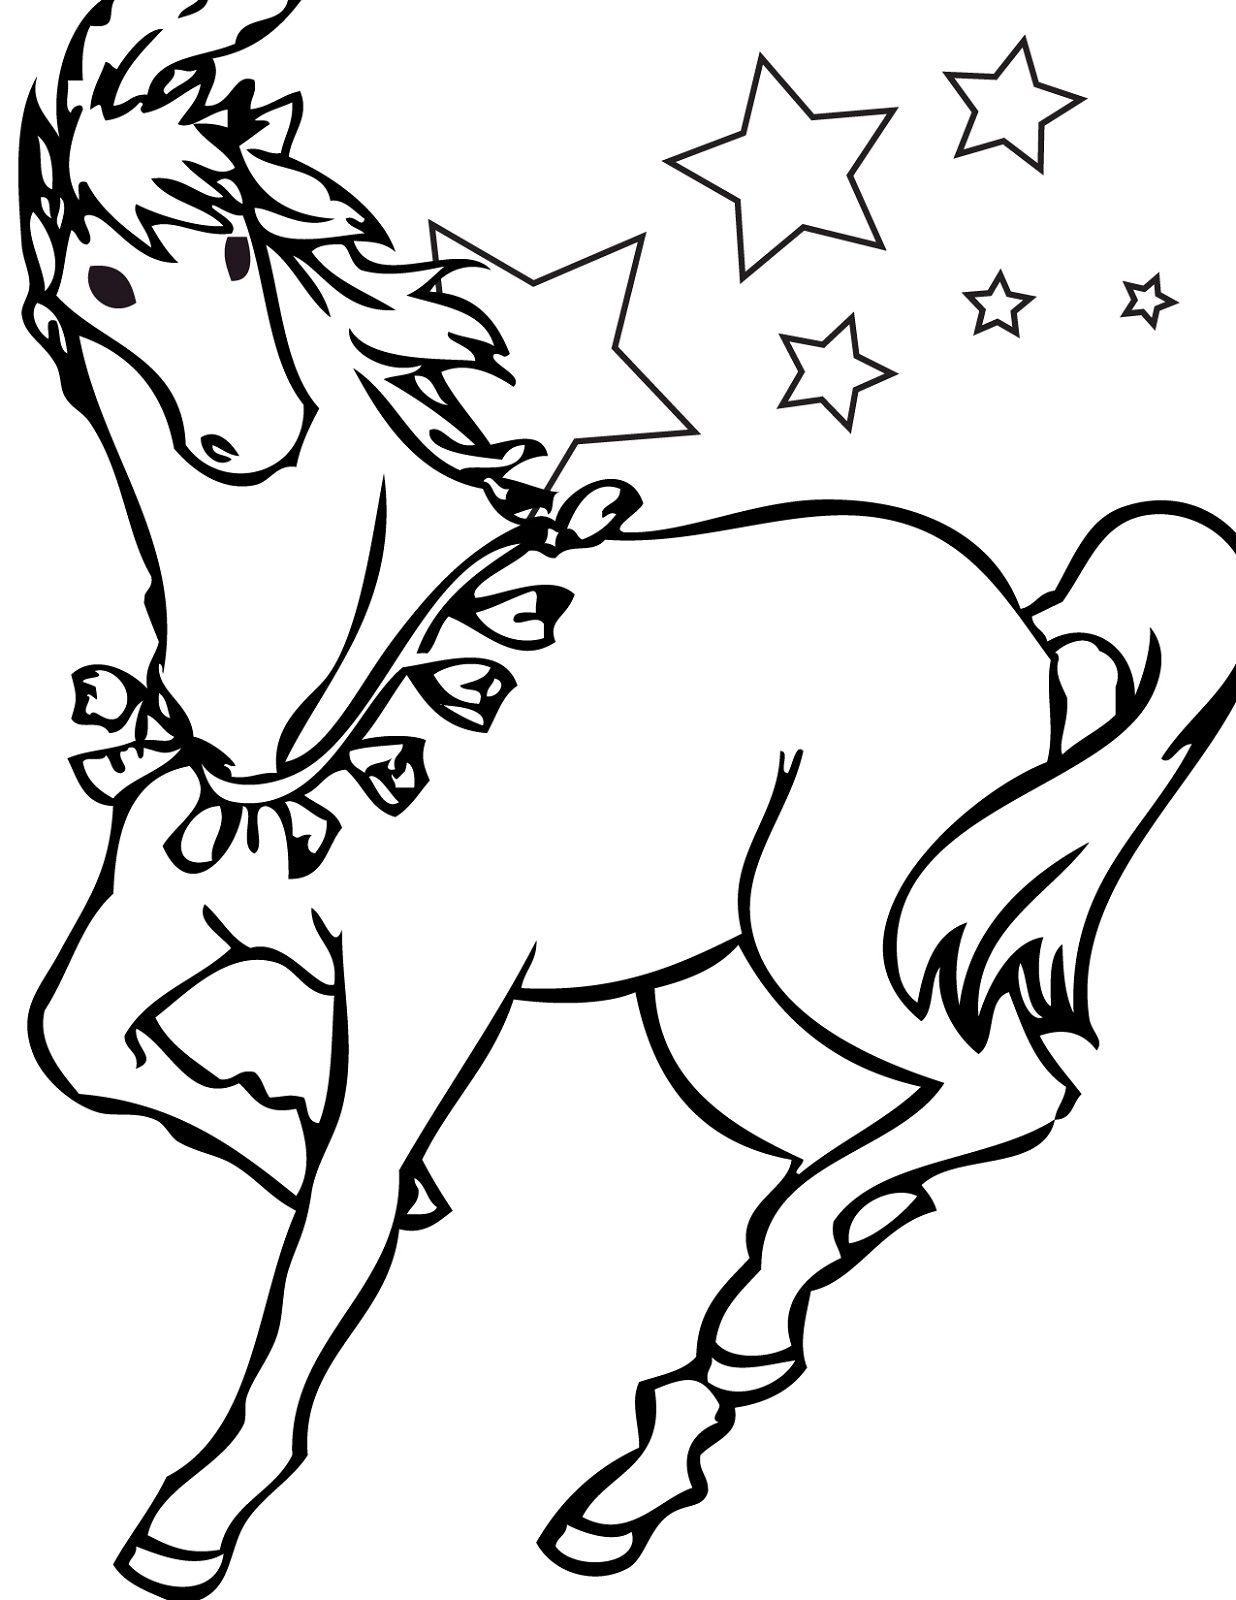 Horse Color Sheet for Kids | Activity Shelter | Coloring Pages for ...